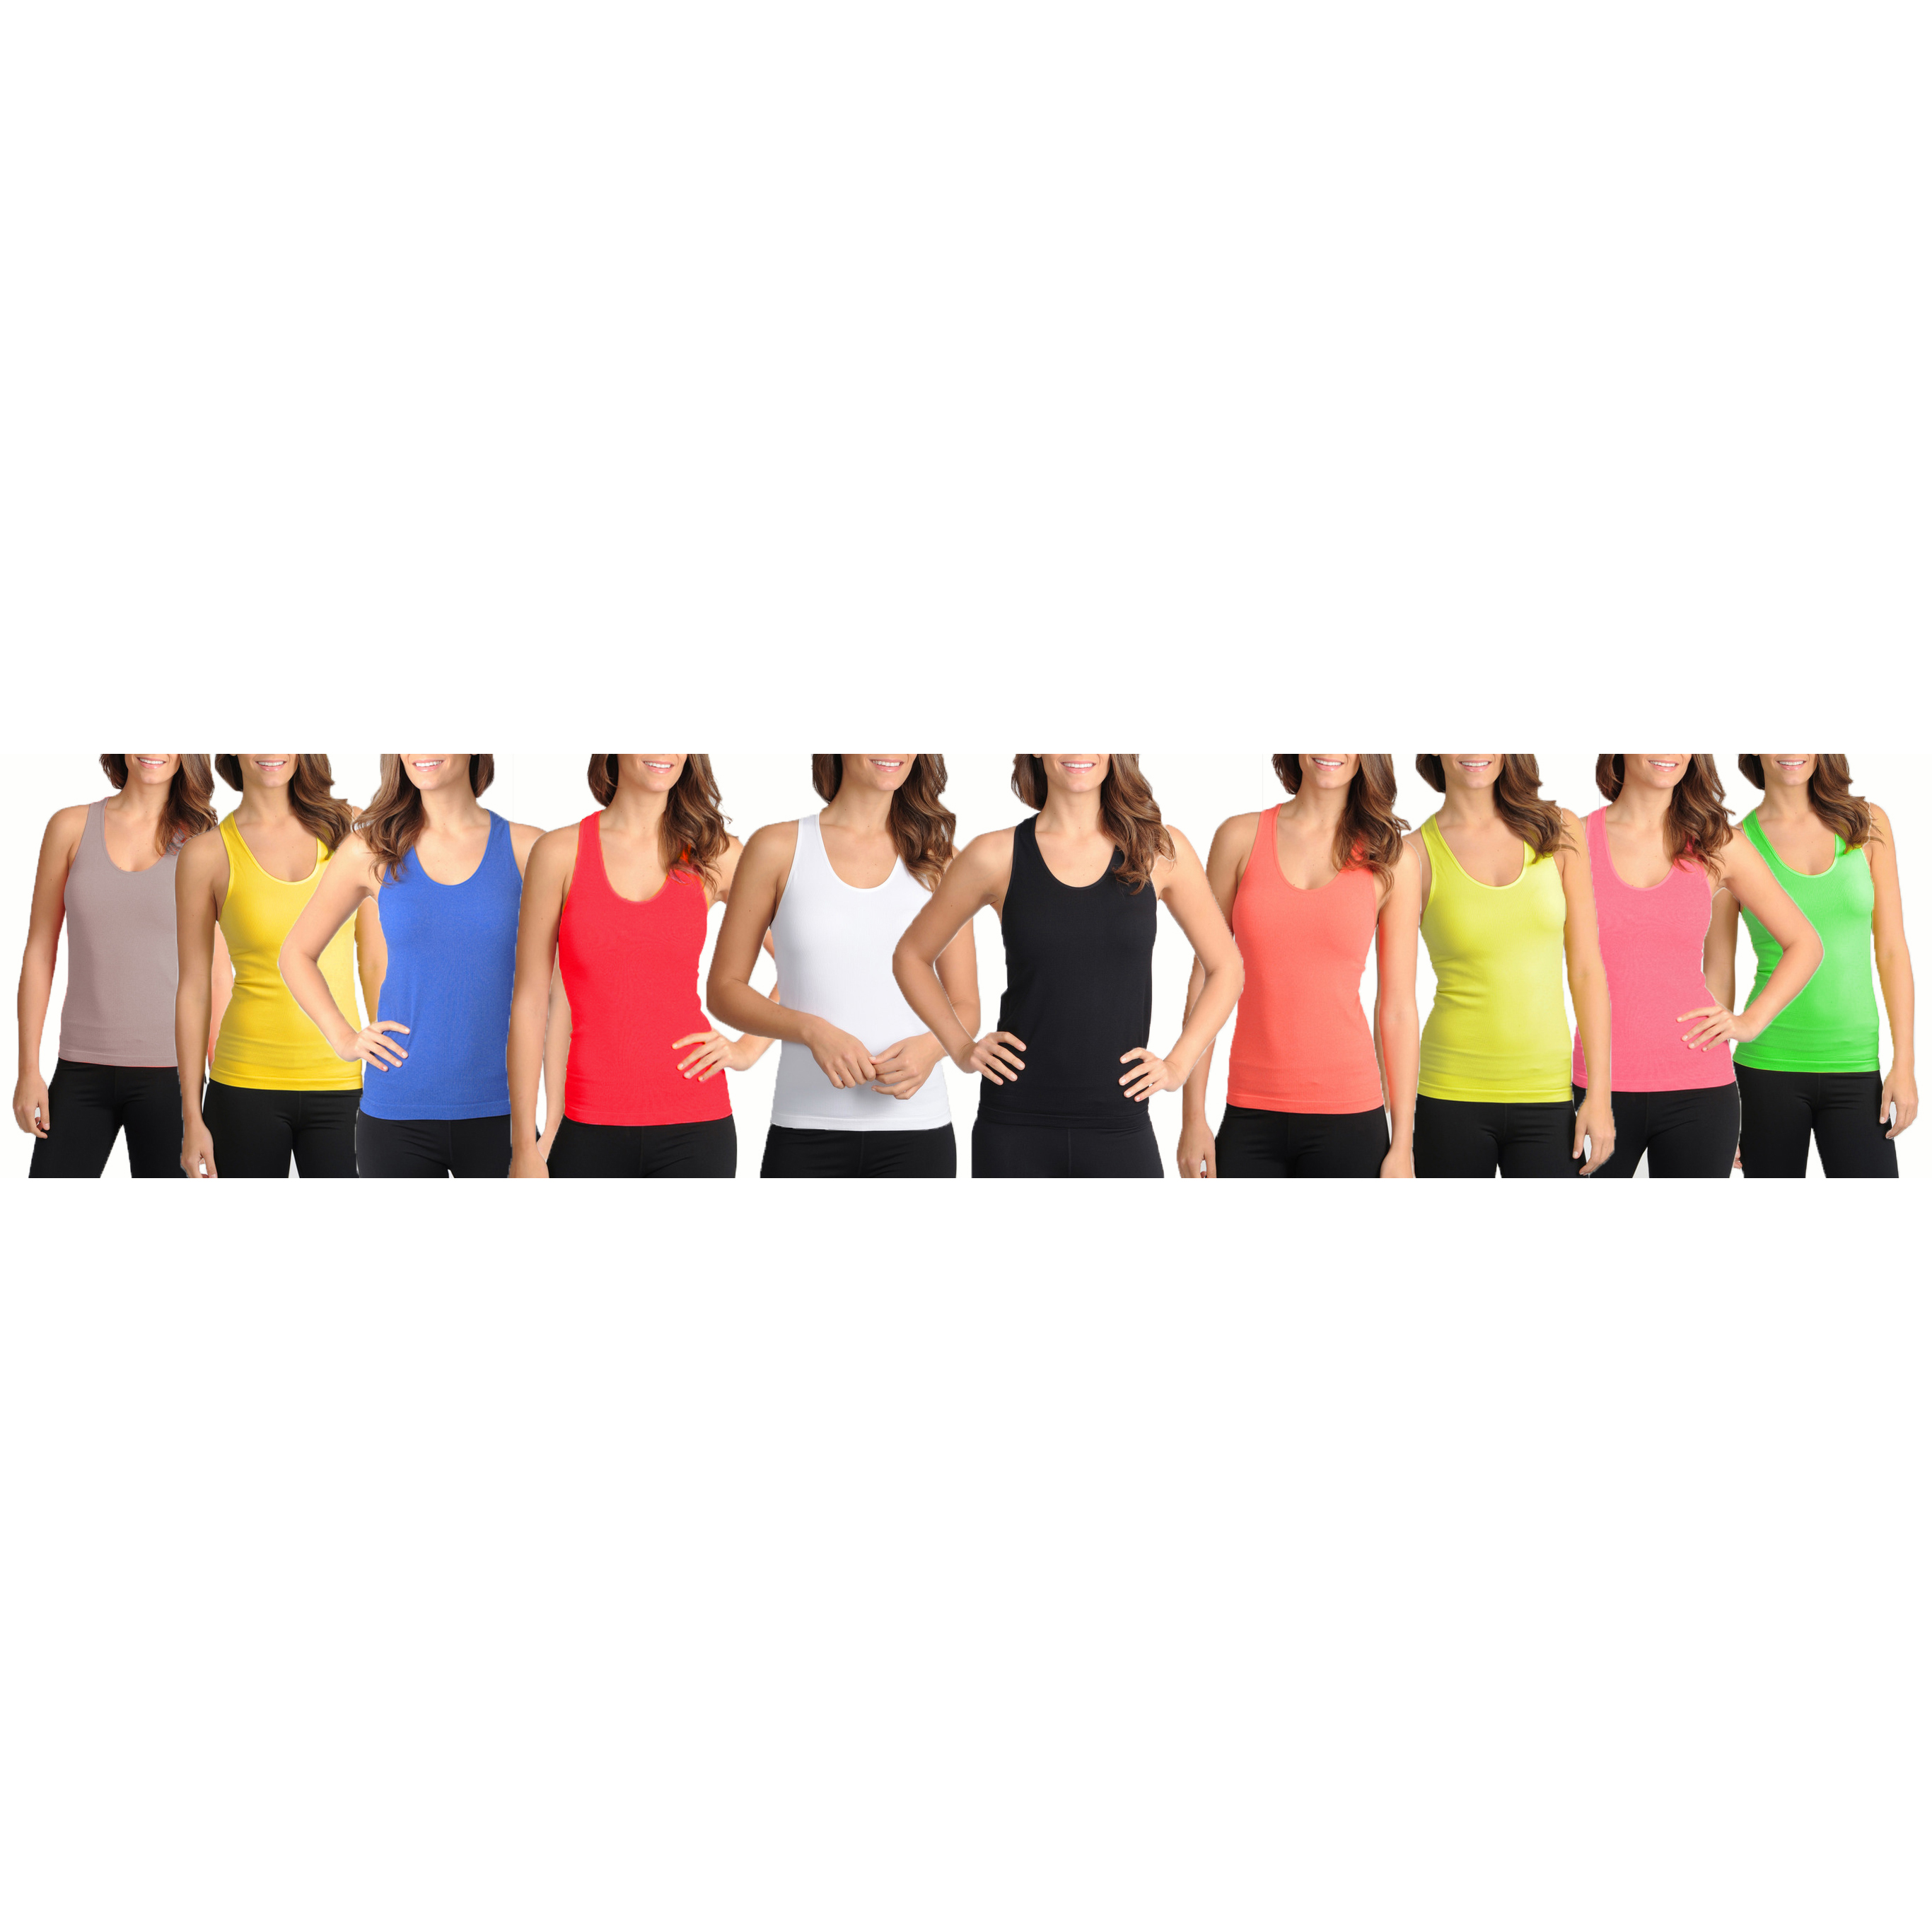 12-Pack Of Women s Ribbed Cotton Tank Tops 2912408